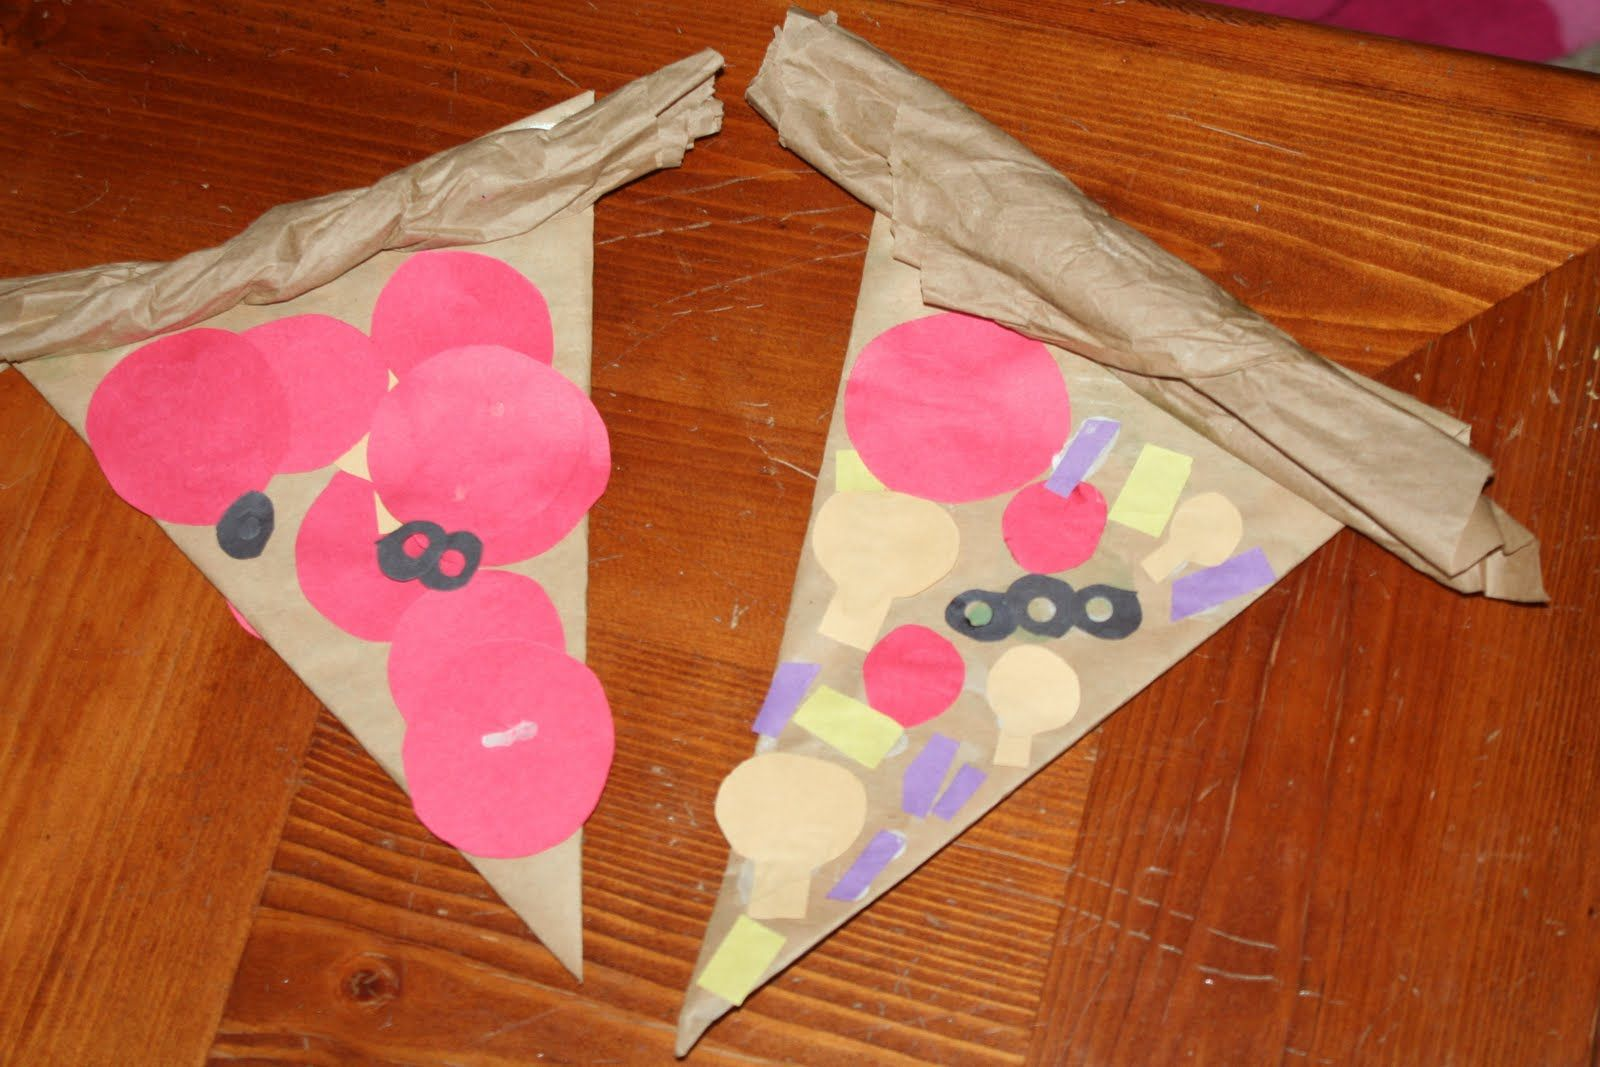 Create Your Own Cardboard Pizza Craft And Your Children